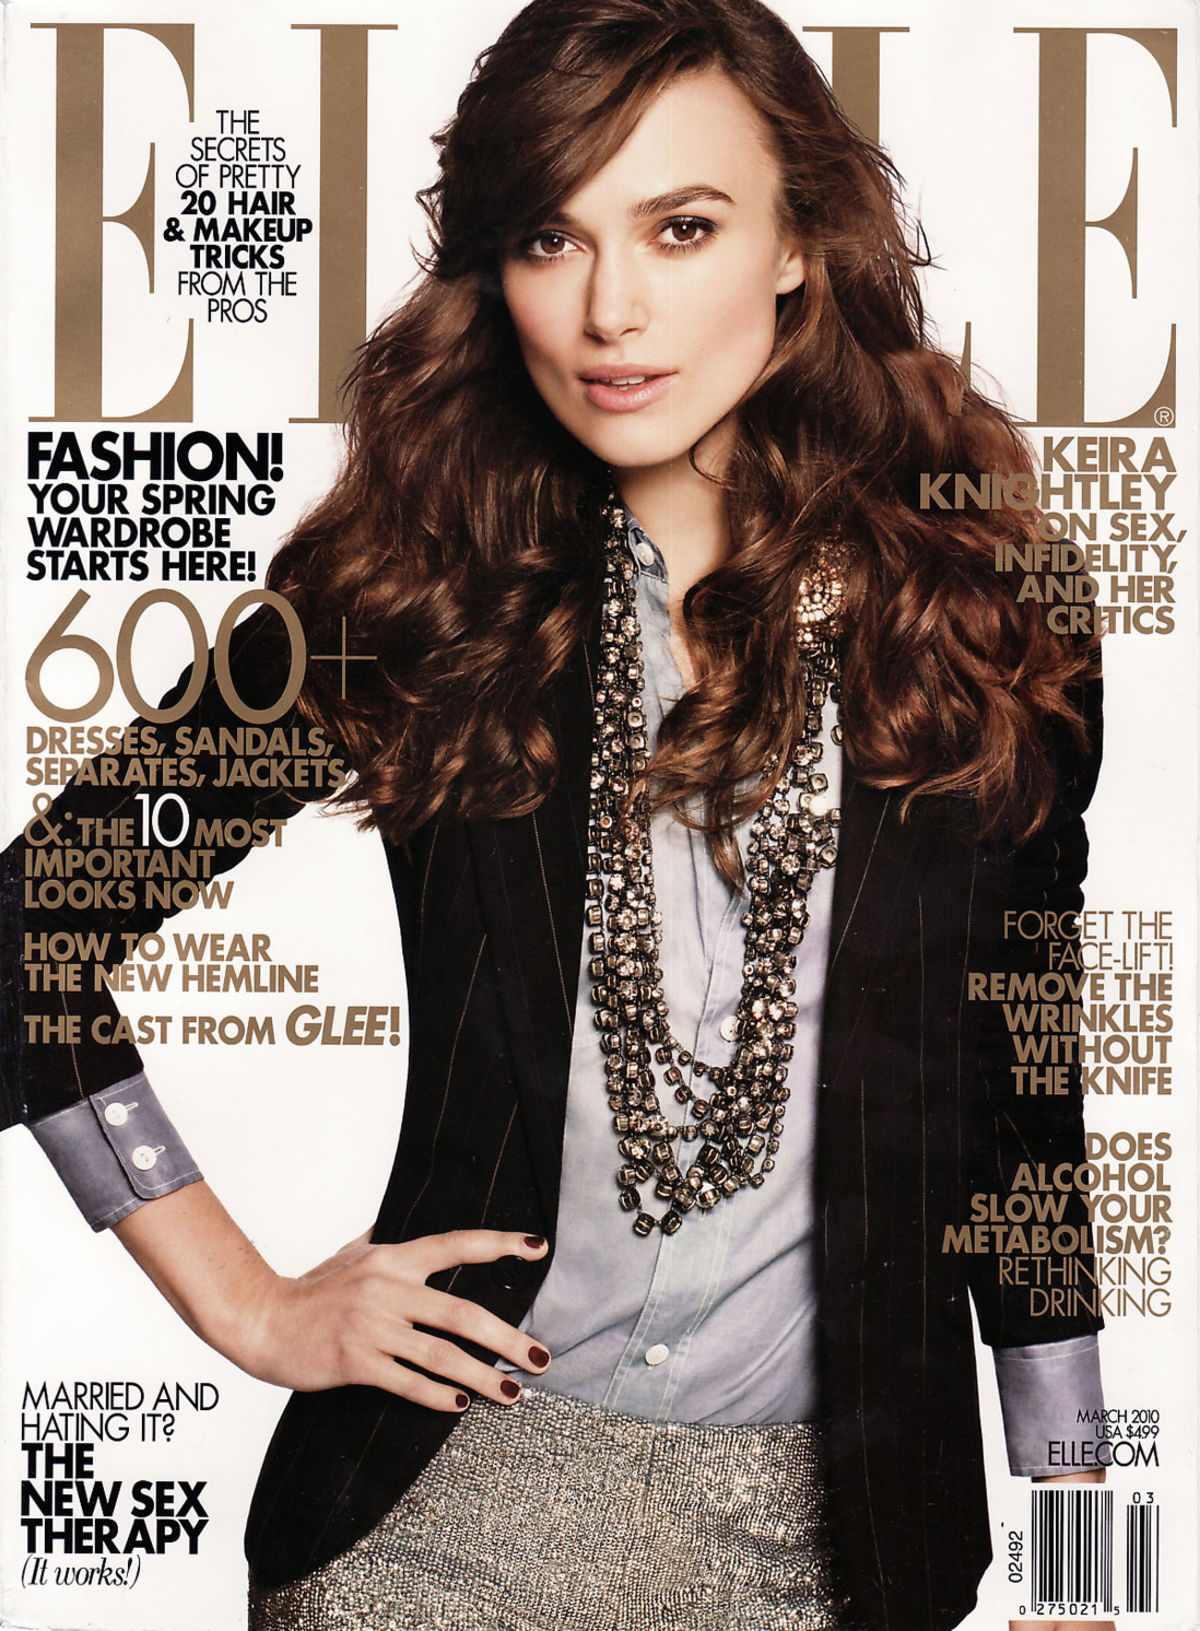 Elle US Mar 10 featuring Keira Knightly